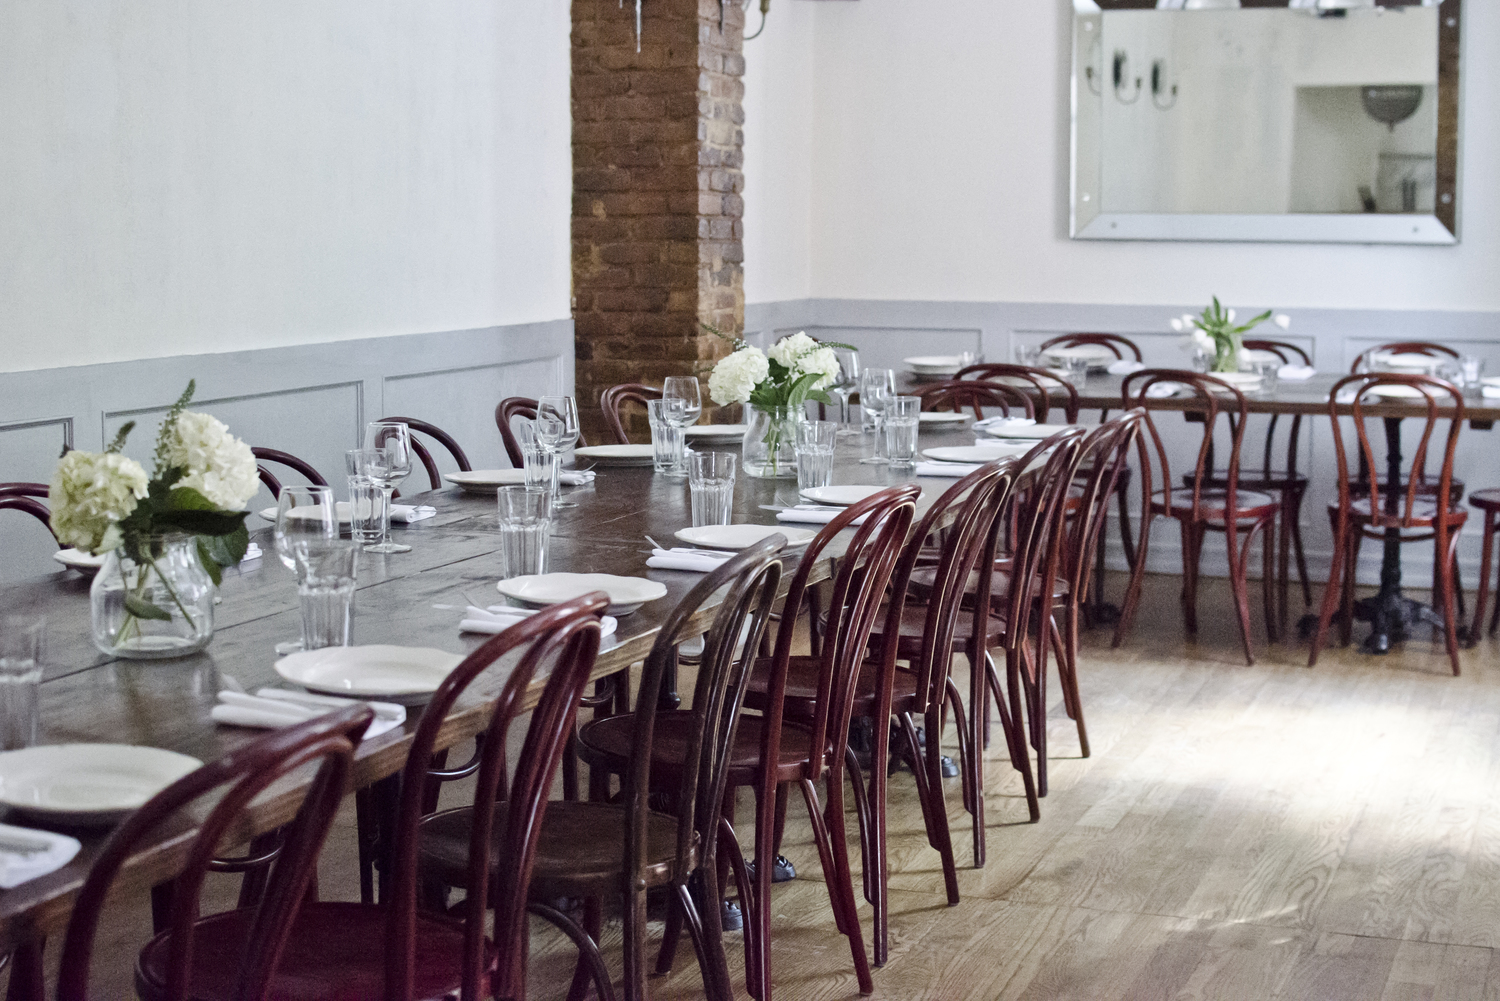 The Upstairs Room At Dino Offers A Private Dining Experience With Same Look And Feel Of Main Restaurant